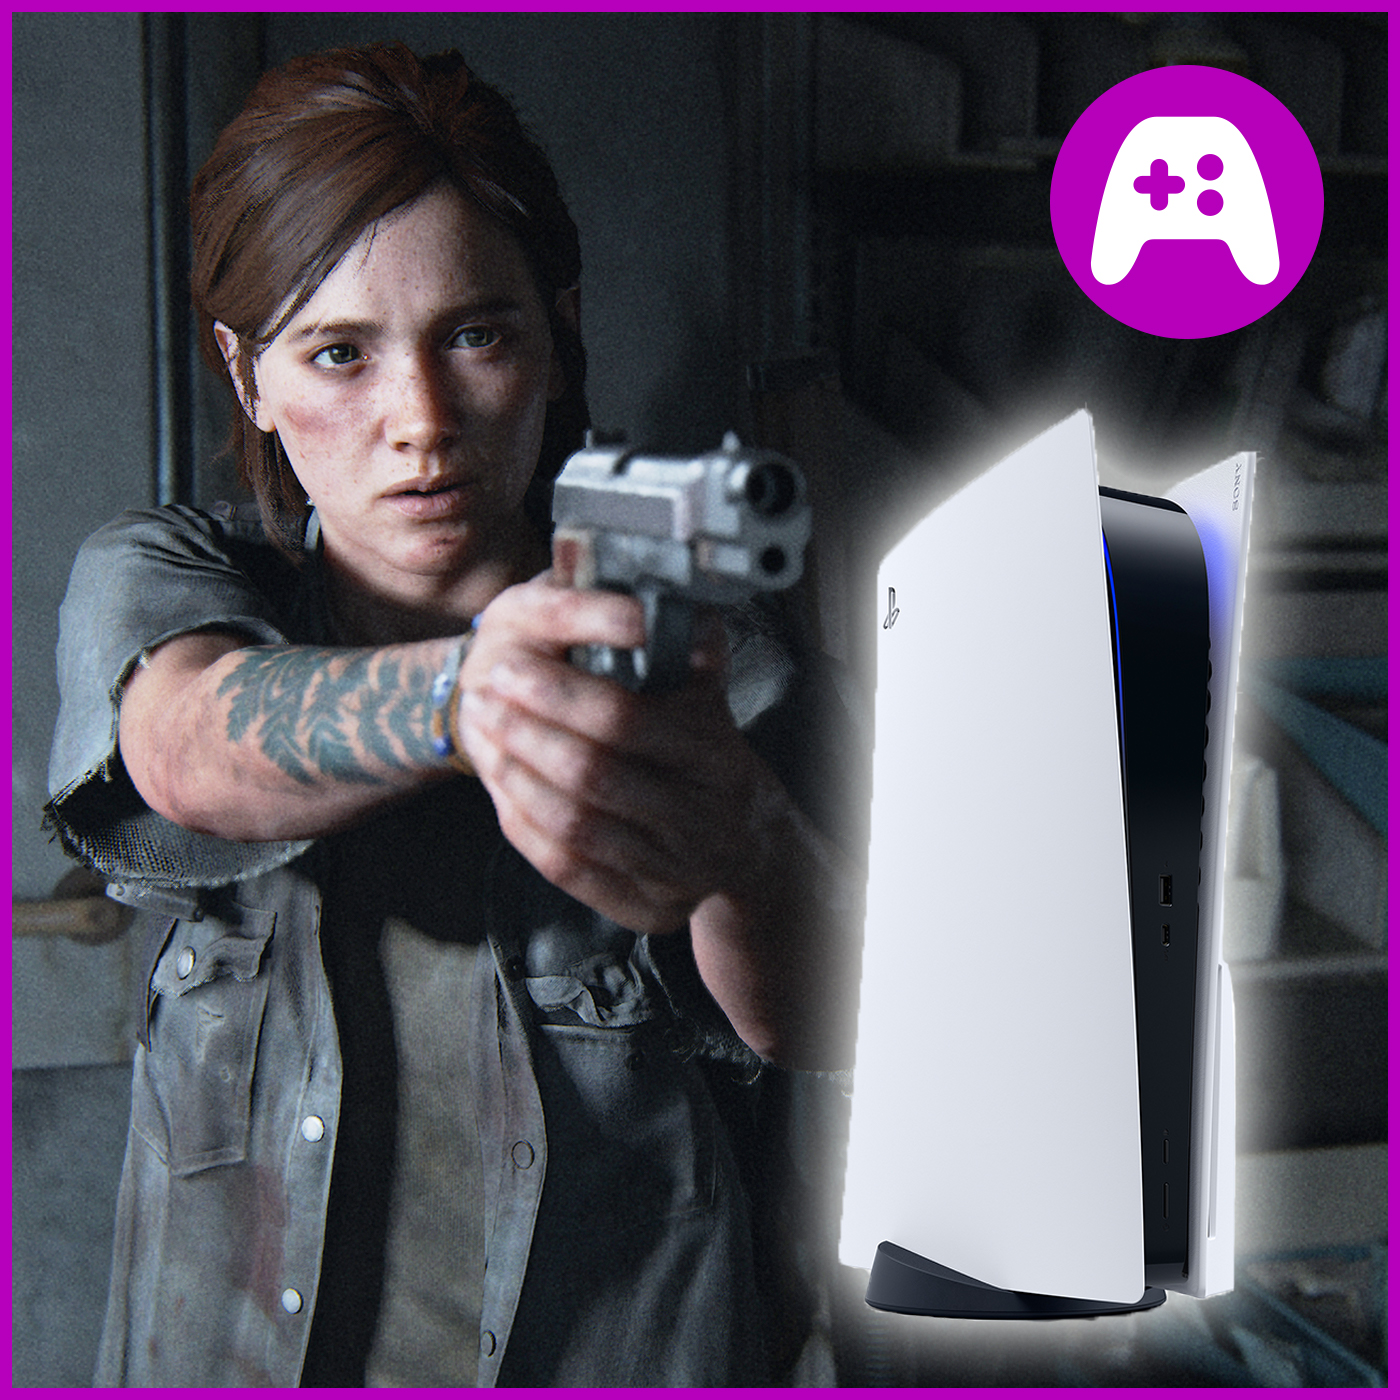 PS5 Reveal & The Last of Us 2 Review - What's Good Games (Ep. 165)